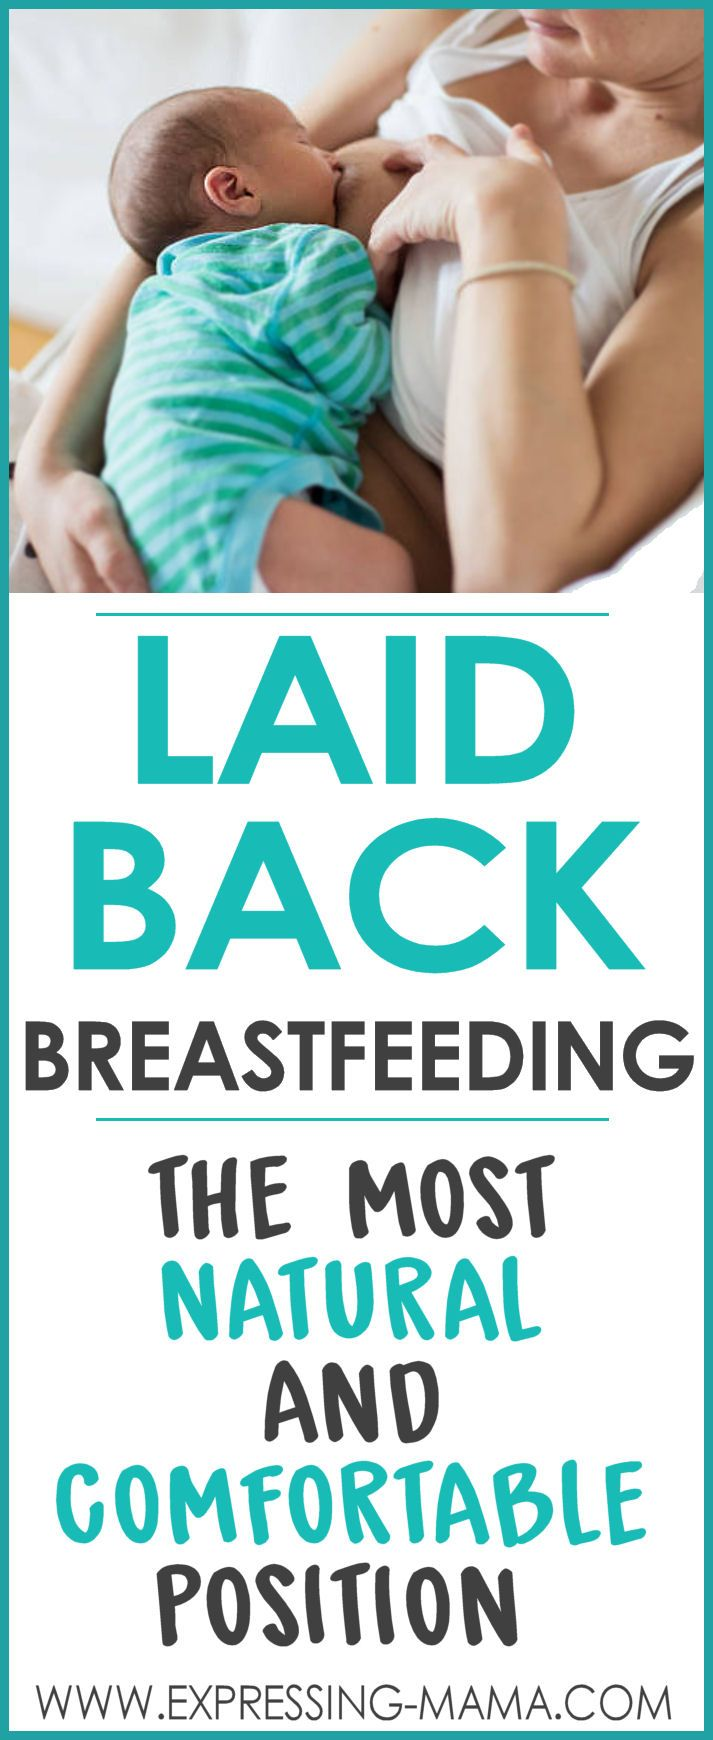 The Laid Back breastfeeding position is an important one new moms don't know about. Not only is it really comfortable but it's easy and flexible too. There are so many benefits to laid back nursing. It's no wonder it's considered the most natural or best breastfeeding position. You may also see it called biological nurturing. Laid Back Breastfeeding - A Position all Nursing Mamas Should Know | Expressing Mama.